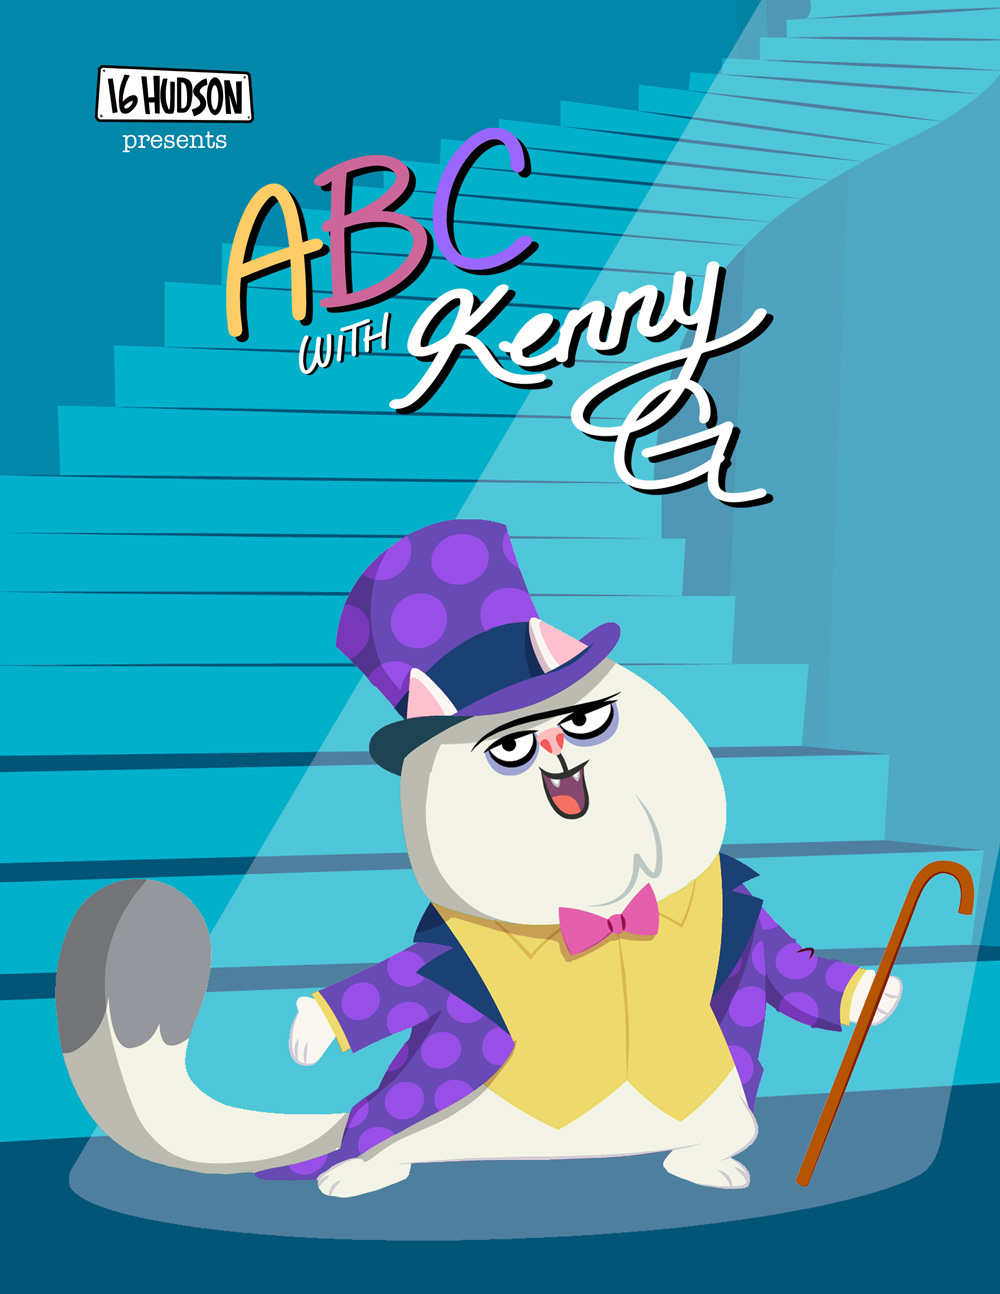 ABC with Kenny G